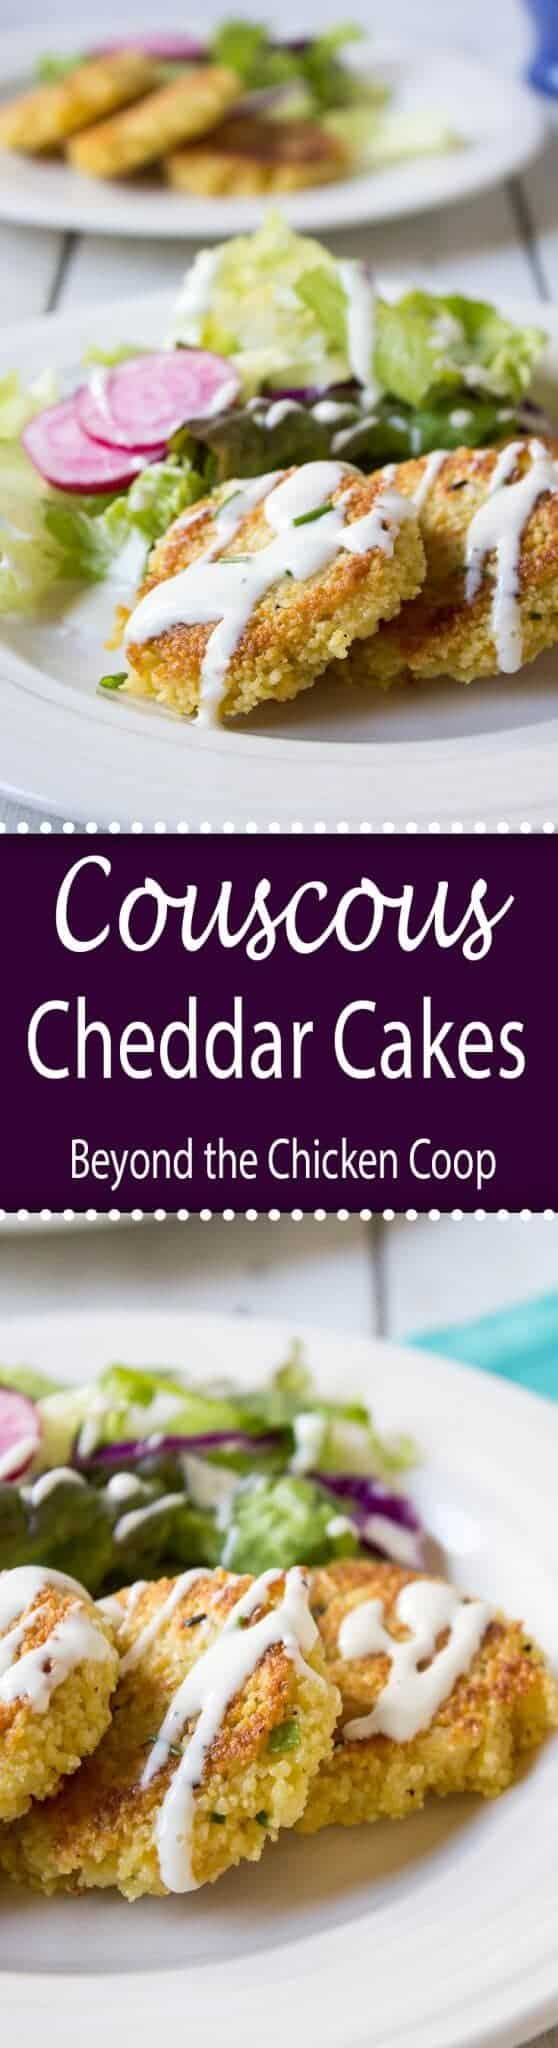 Crispy couscous cheddar cakes are delicious eaten with a salad or as an appetizer.